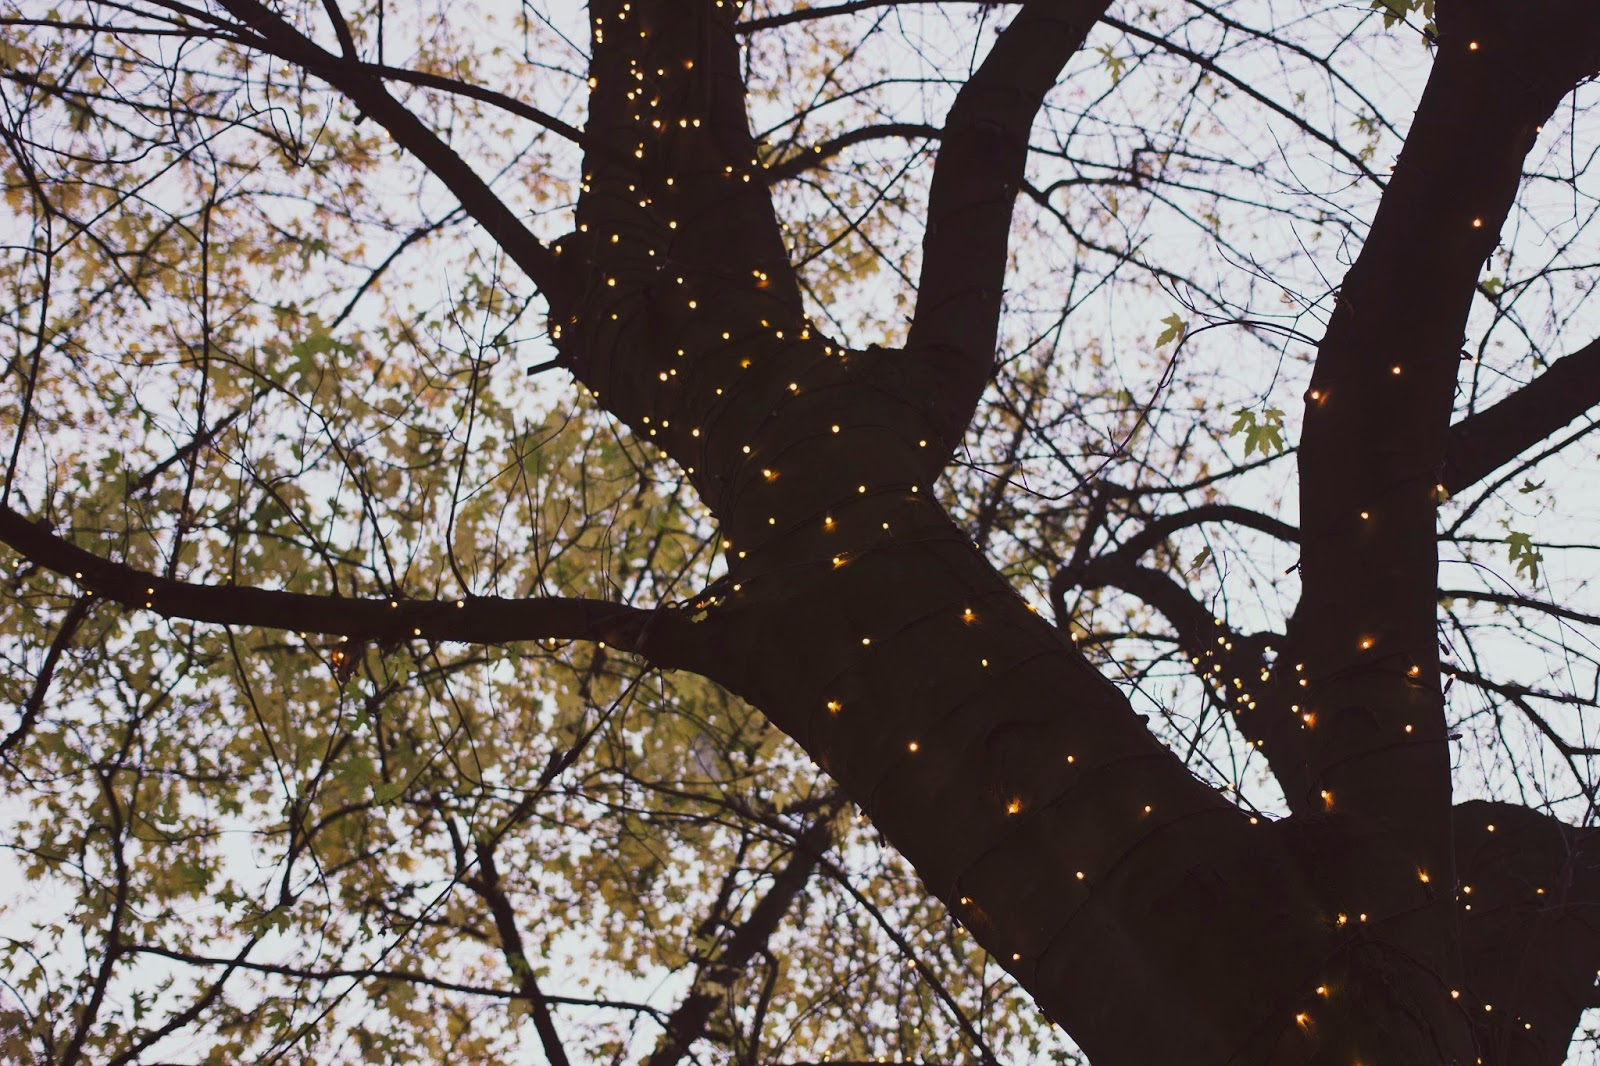 Tree, Manchester Christmas Market 2016, Fairy Lights on Tree, Katie Writes,